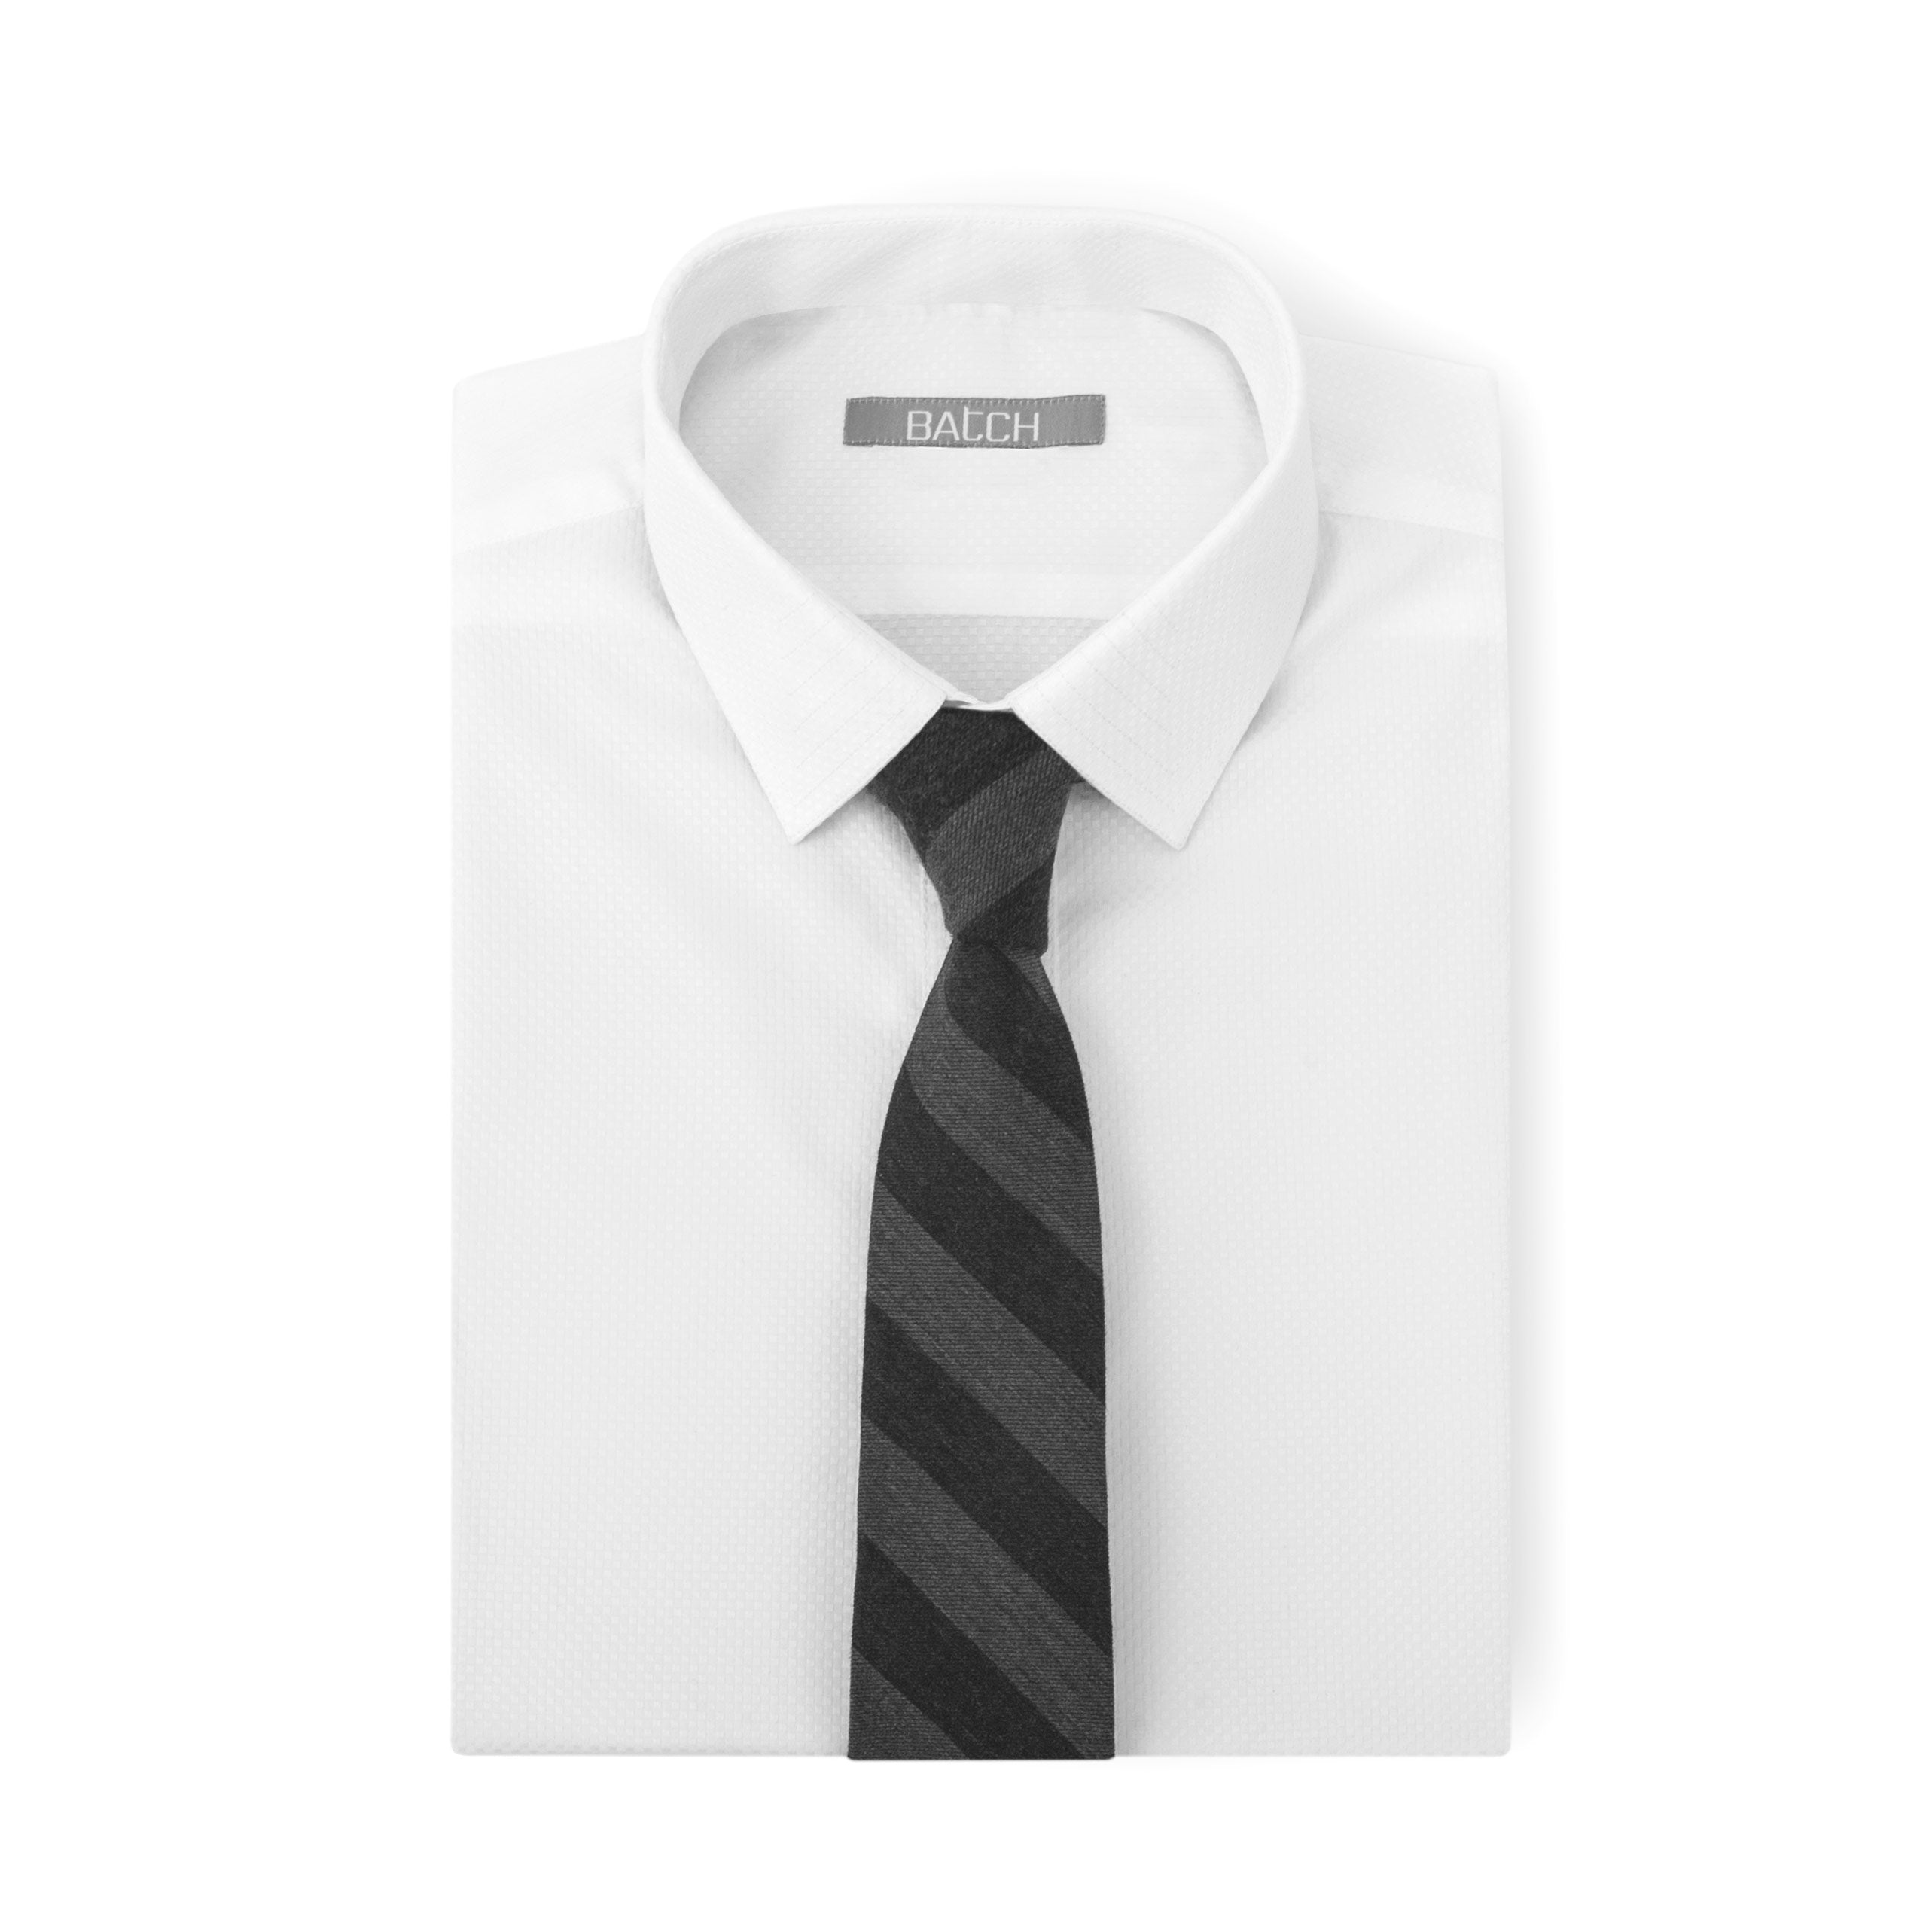 Arctic White Shirt with Tie